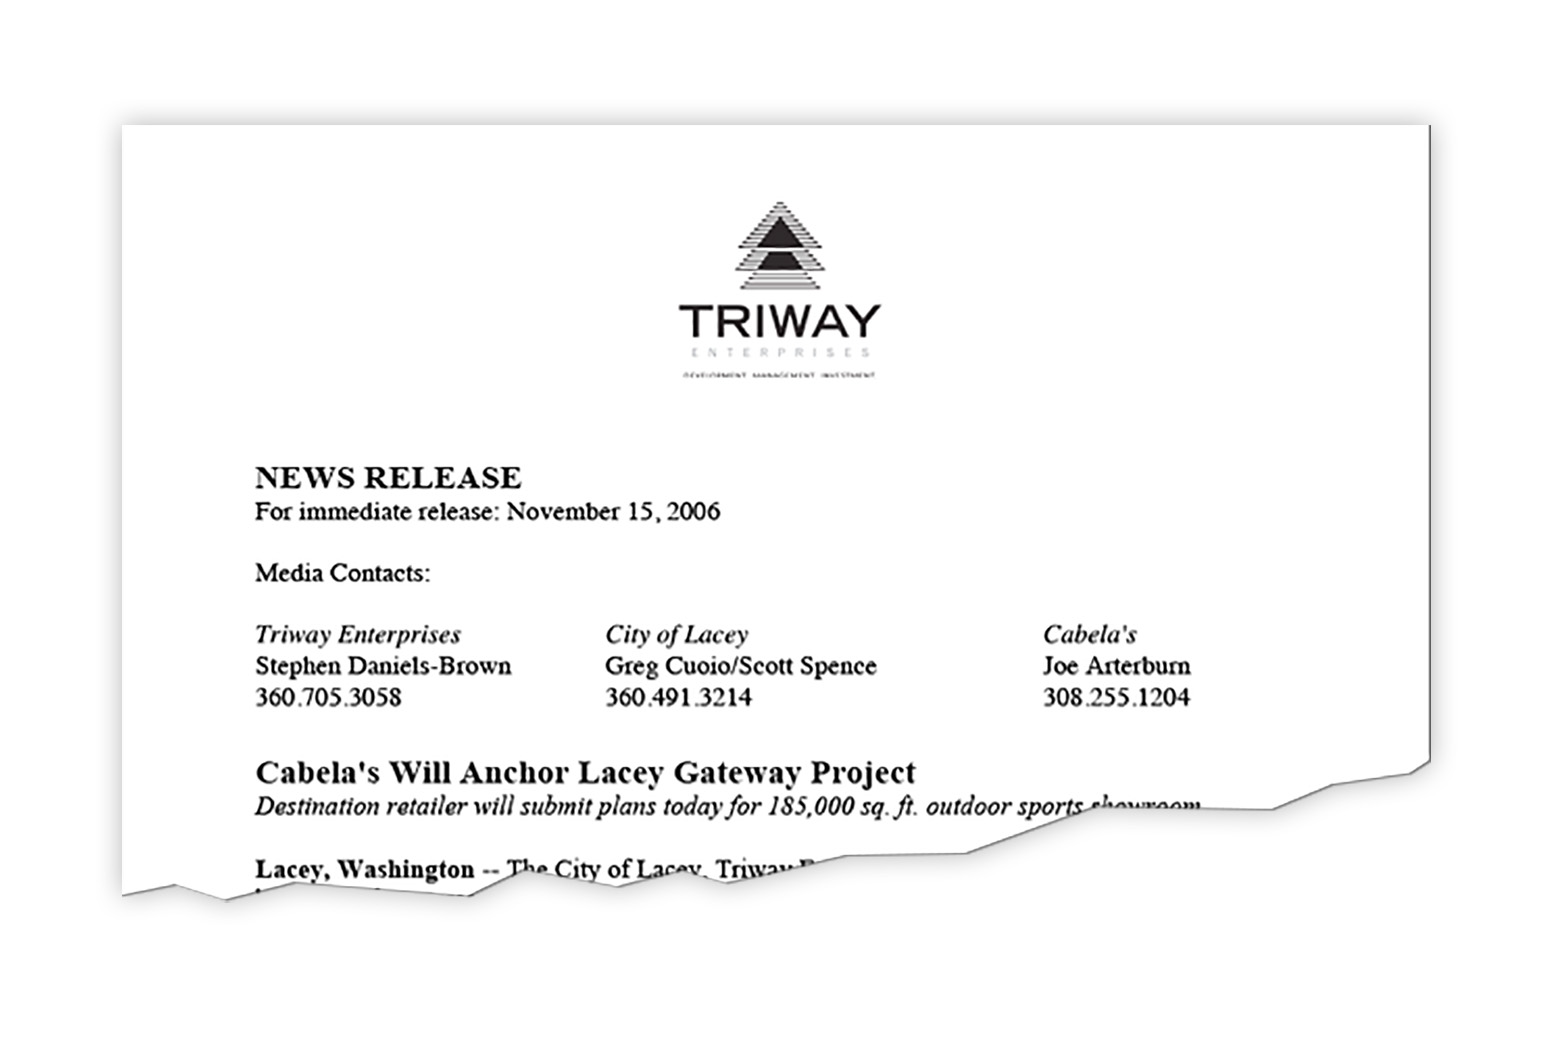 client: Triway Enterprises DBC Principal was retained by commercial real estate developer Tri Vo to help secure state infrastructure grants necessary to recruit anchor tenant CAbela's at the Lacey Gateway center. The successful recruitment of cabela's brought in millions of dollars in local and state tax revenue to help further development of the Thurston County region.